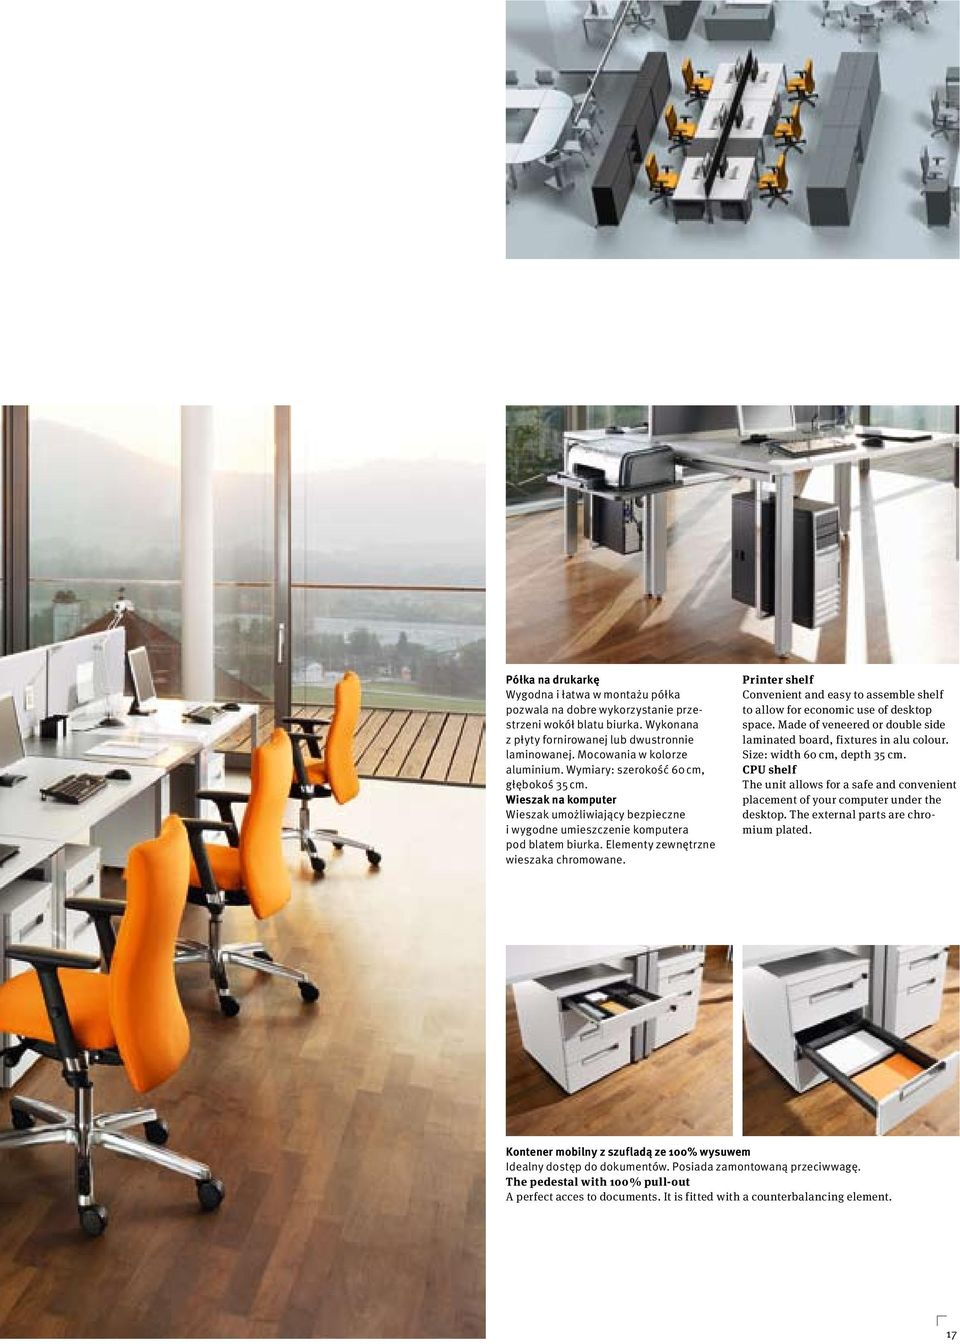 Elementy zewnętrzne wieszaka chromowane. Printer shelf Convenient and easy to assemble shelf to allow for economic use of desktop space.